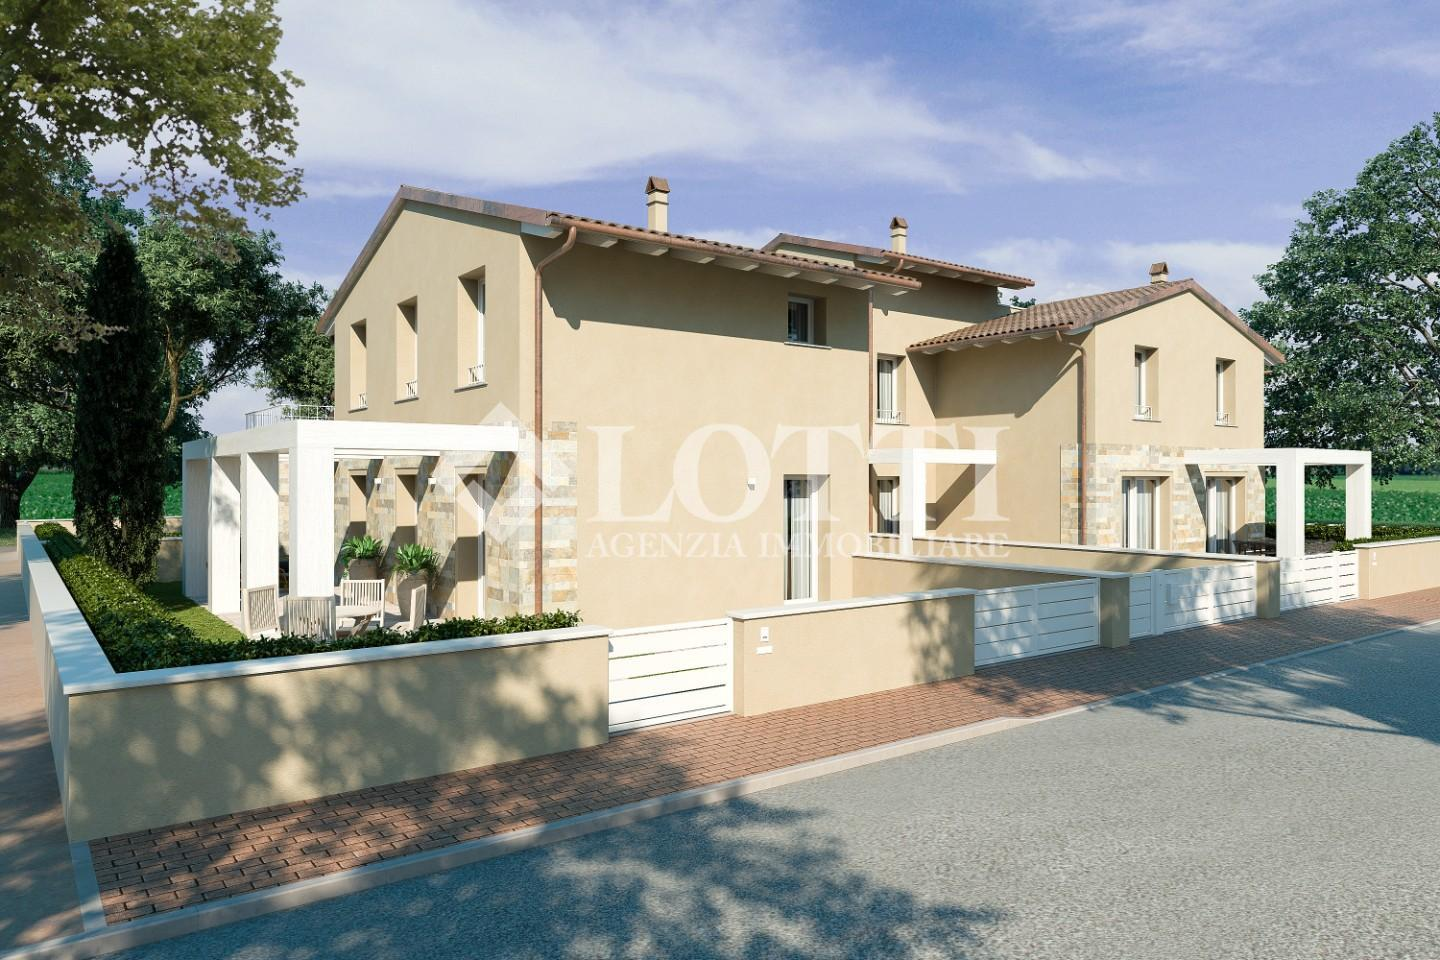 Apartment for sale, ref. 654-B